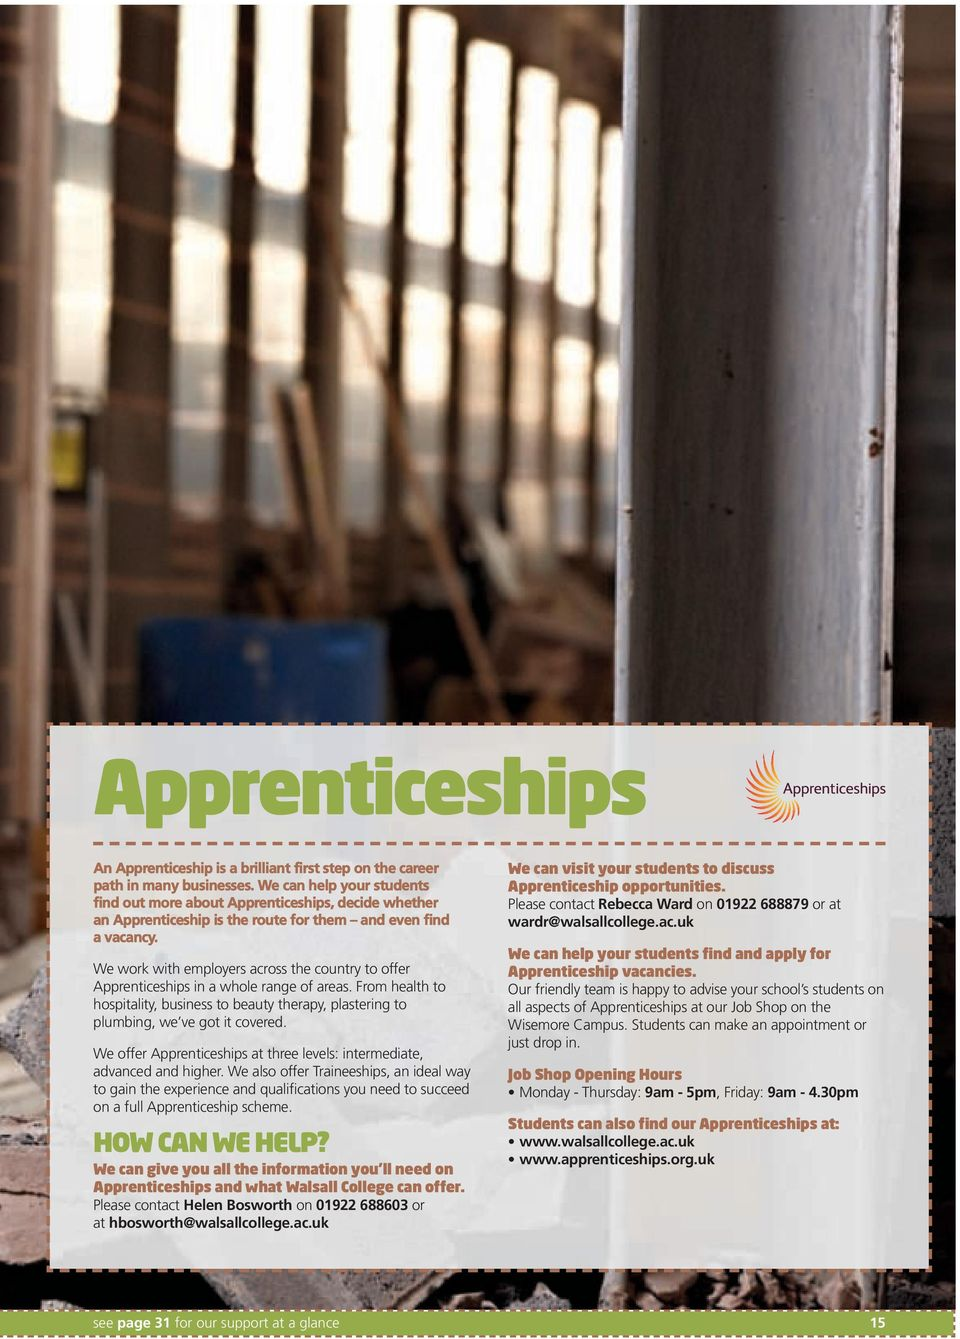 We work with employers across the country to offer Apprenticeships in a whole range of areas. From health to hospitality, business to beauty therapy, plastering to plumbing, we ve got it covered.